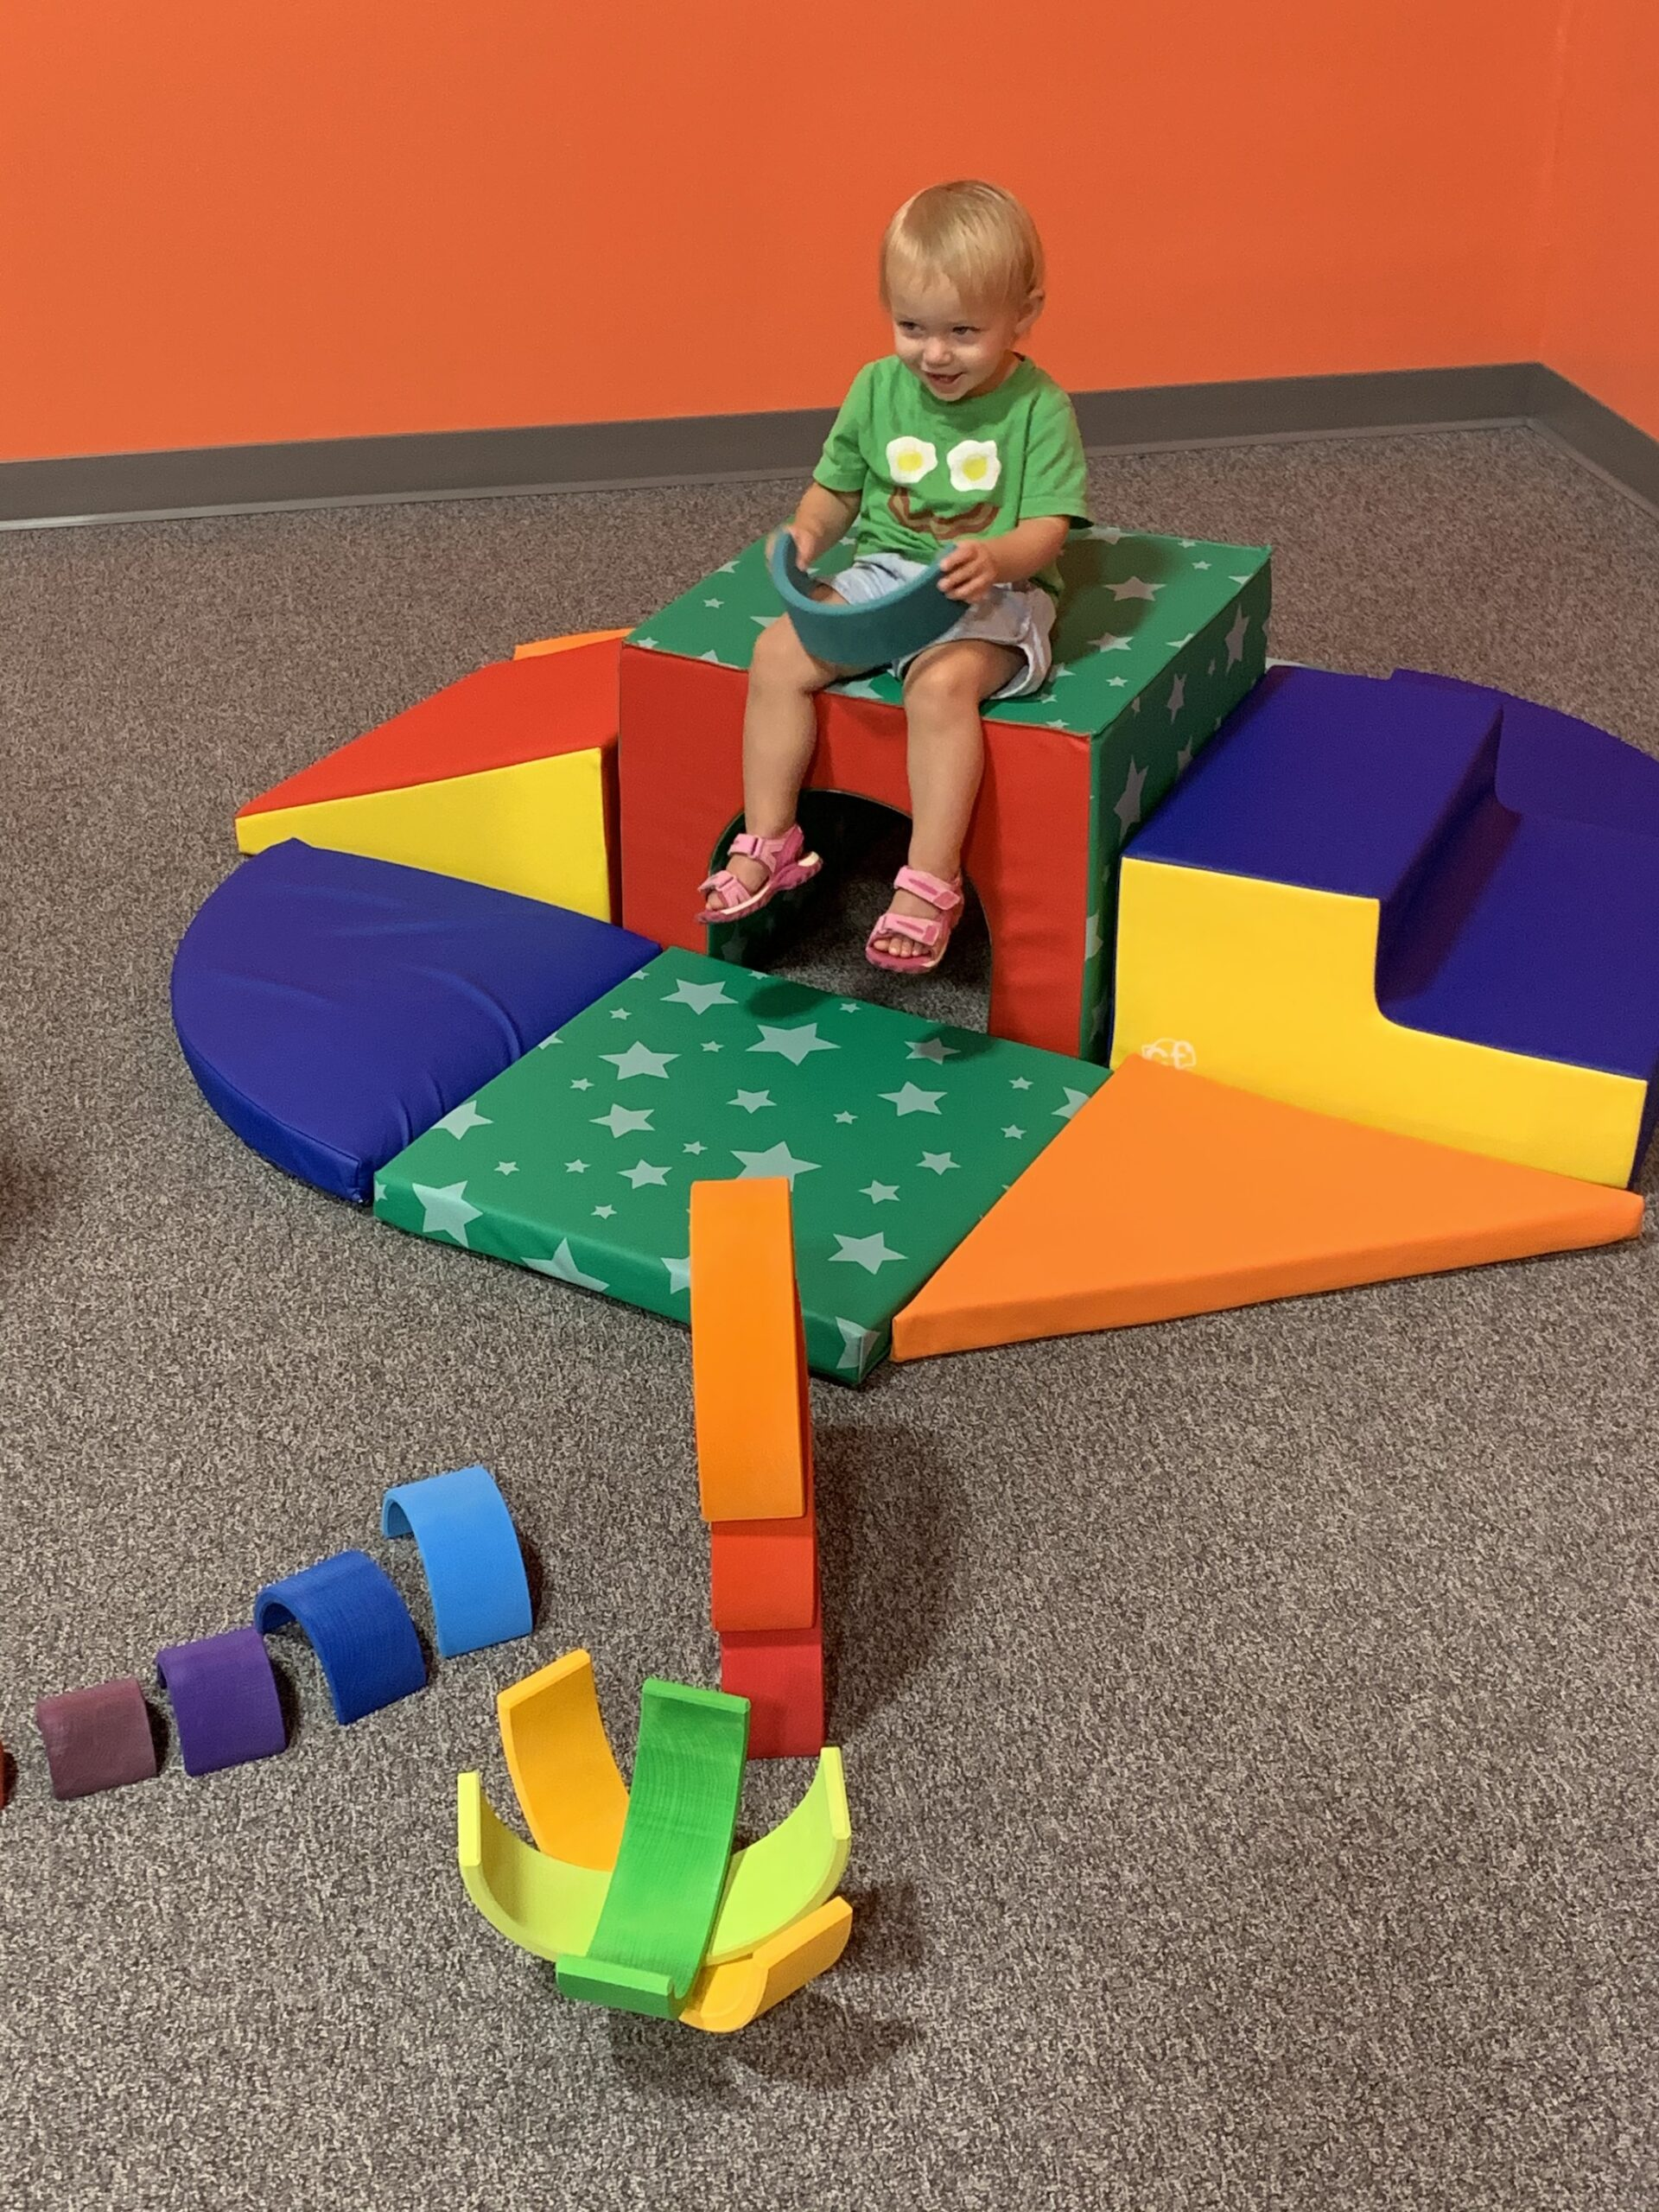 Toddler in primary colored play space at the Albany Museum of Art, one of the free things to do in Albany GA